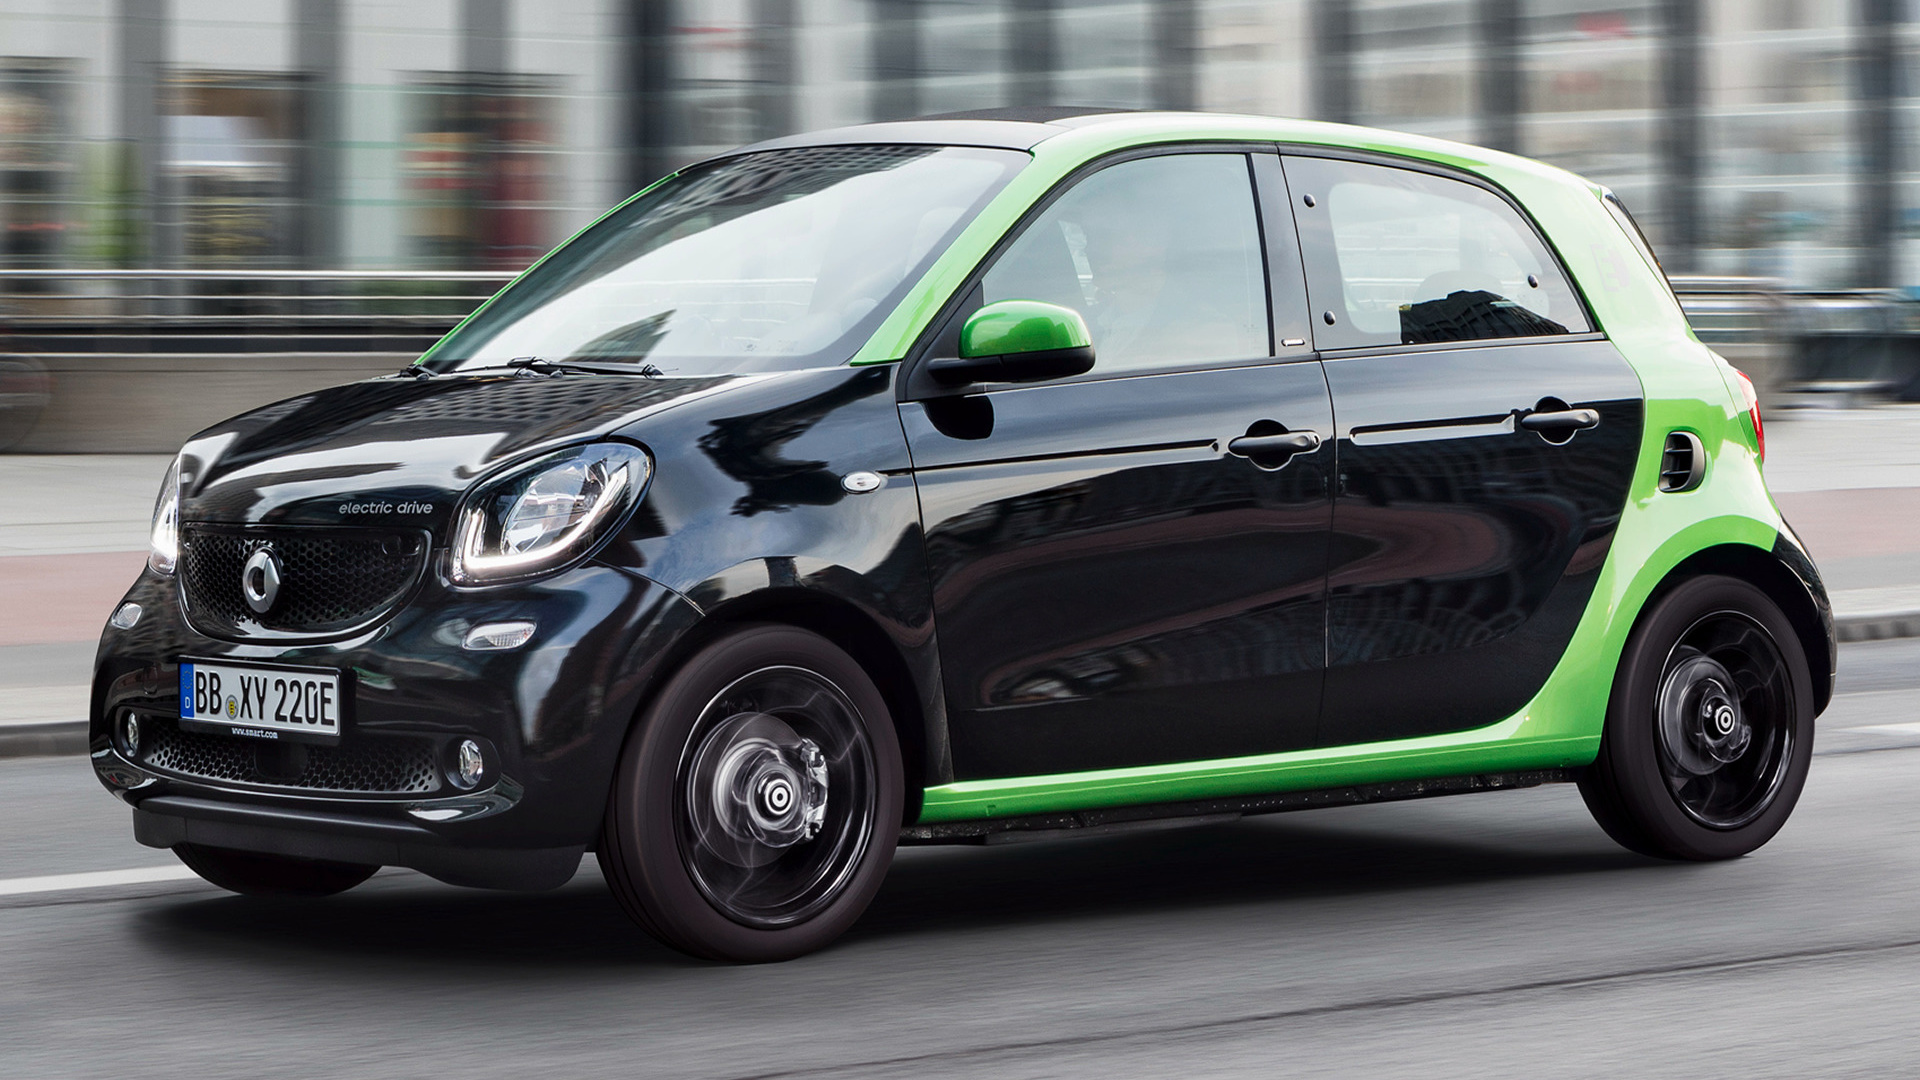 Smart Forfour electric drive (2017) Wallpapers and HD Images - Car Pixel